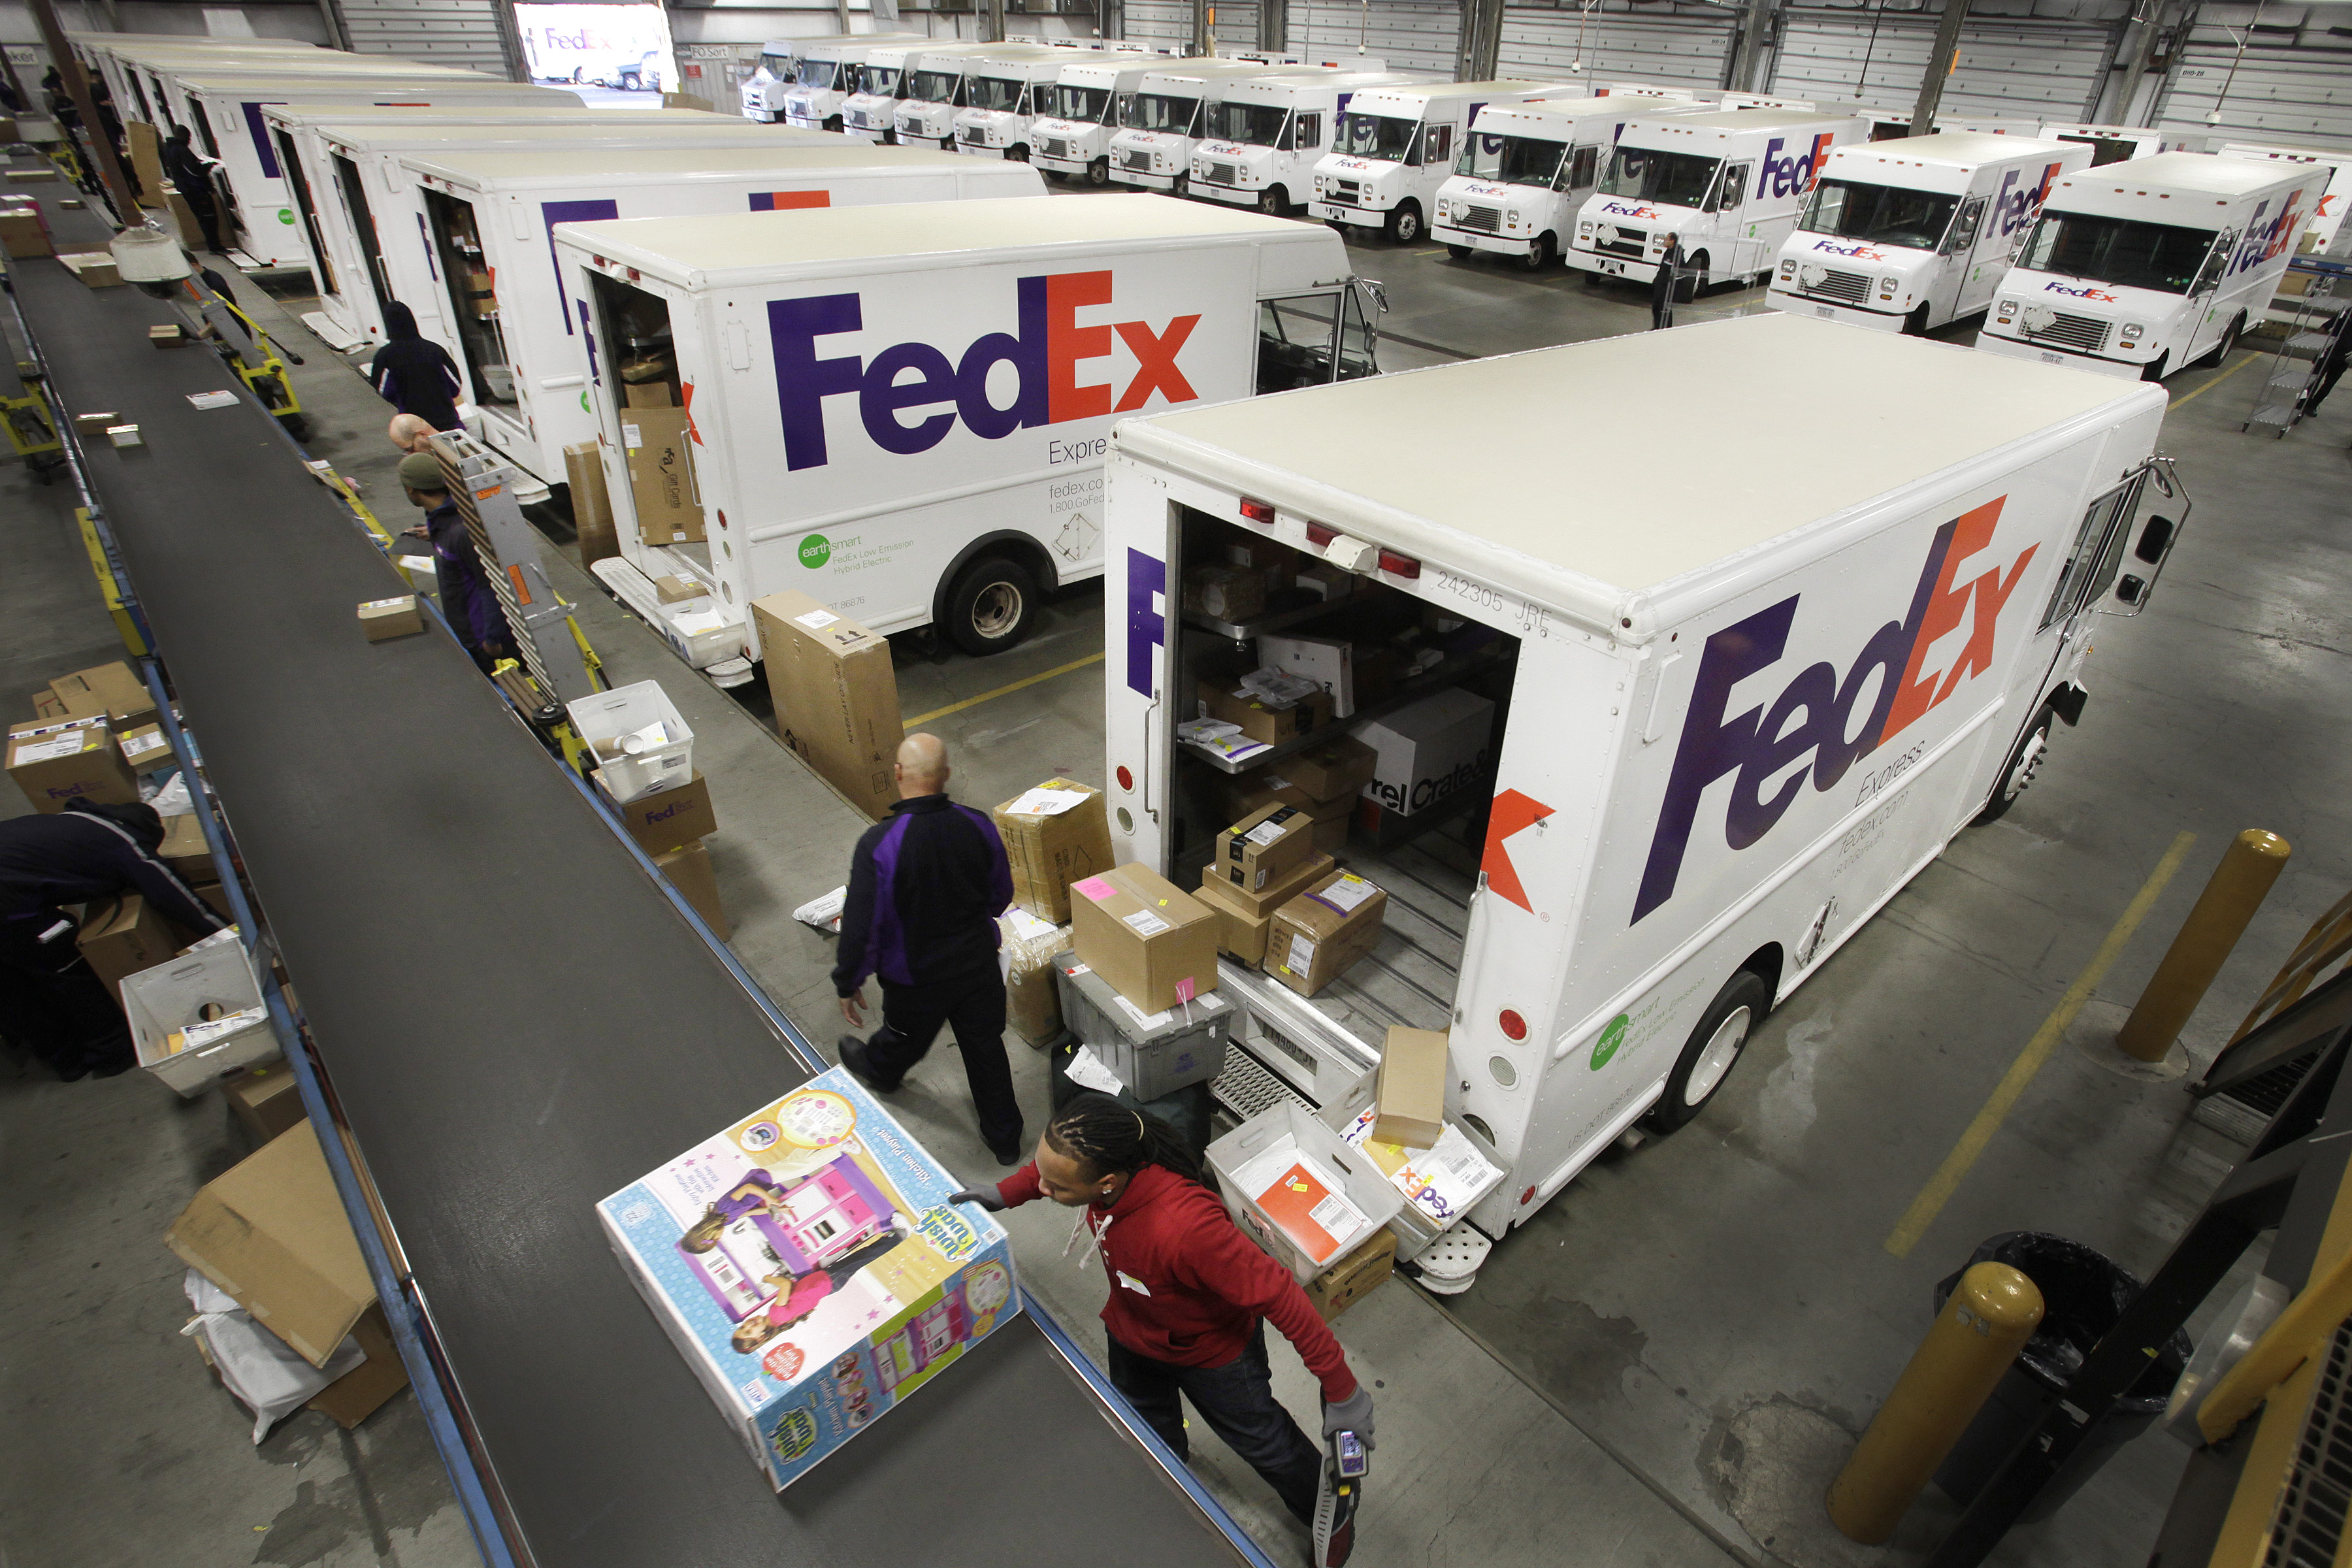 FedEx employees fill their trucks for deliveries at a FedEx sorting facility in the Bronx, New York on Dec. 15, 2014.